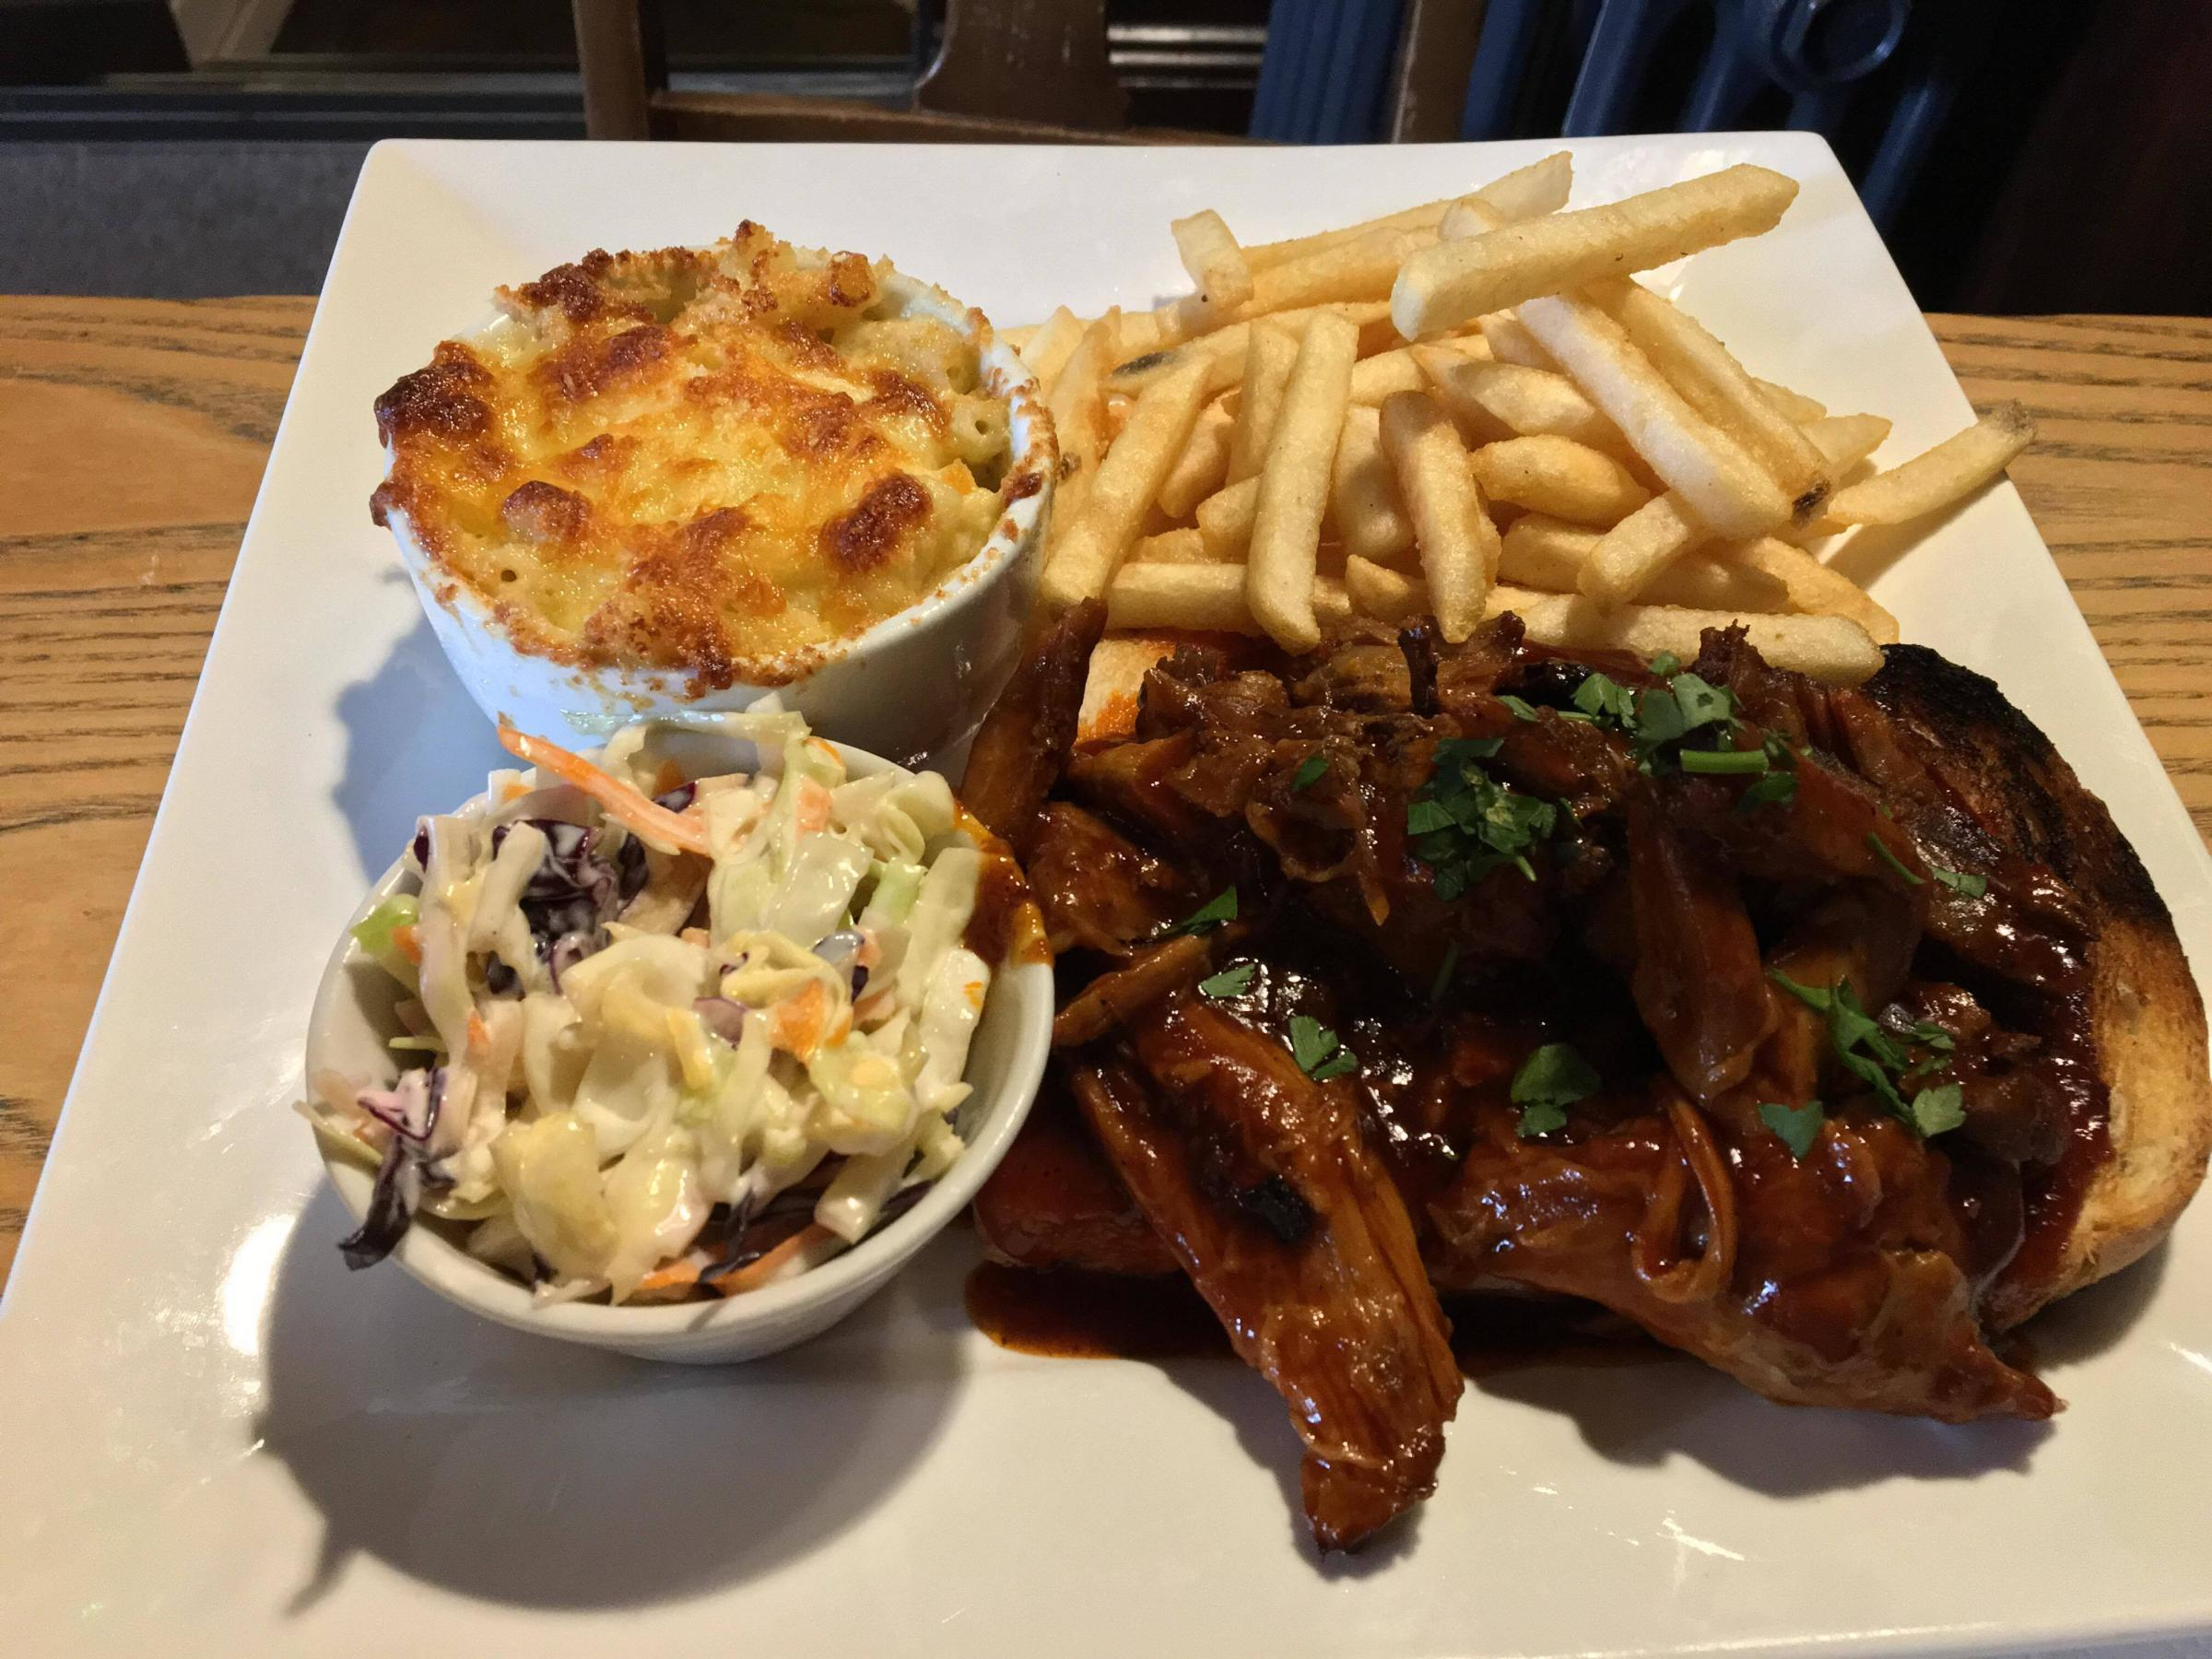 Review: We tried the huge portions at The Brewery Tap in Abingdon